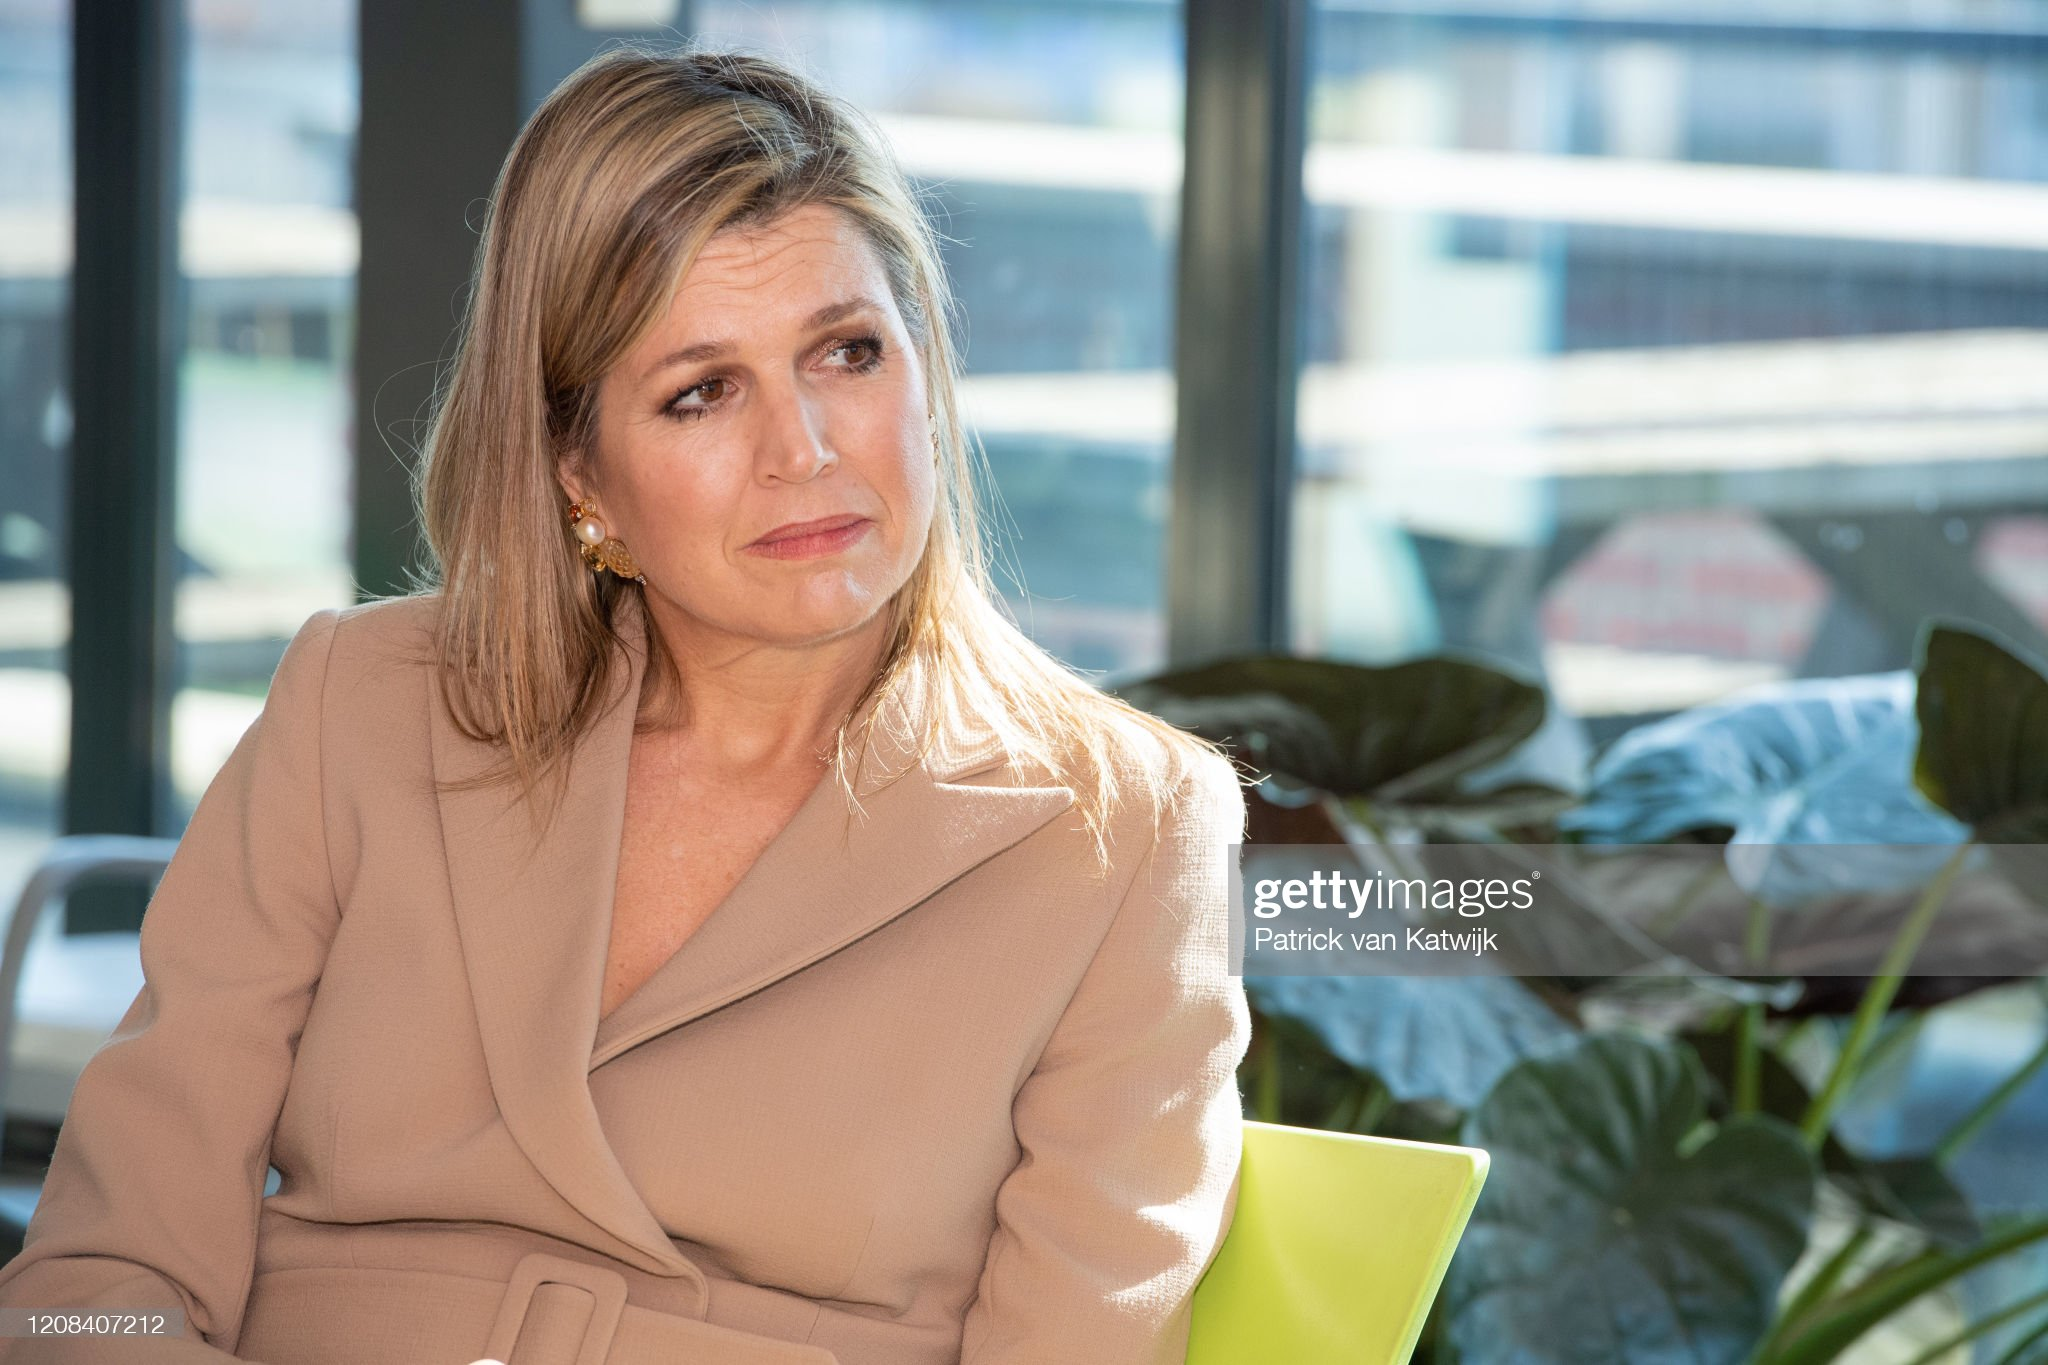 https://media.gettyimages.com/photos/queen-maxima-of-the-netherlands-visits-zuidbaak-floriculture-company-picture-id1208407212?s=2048x2048